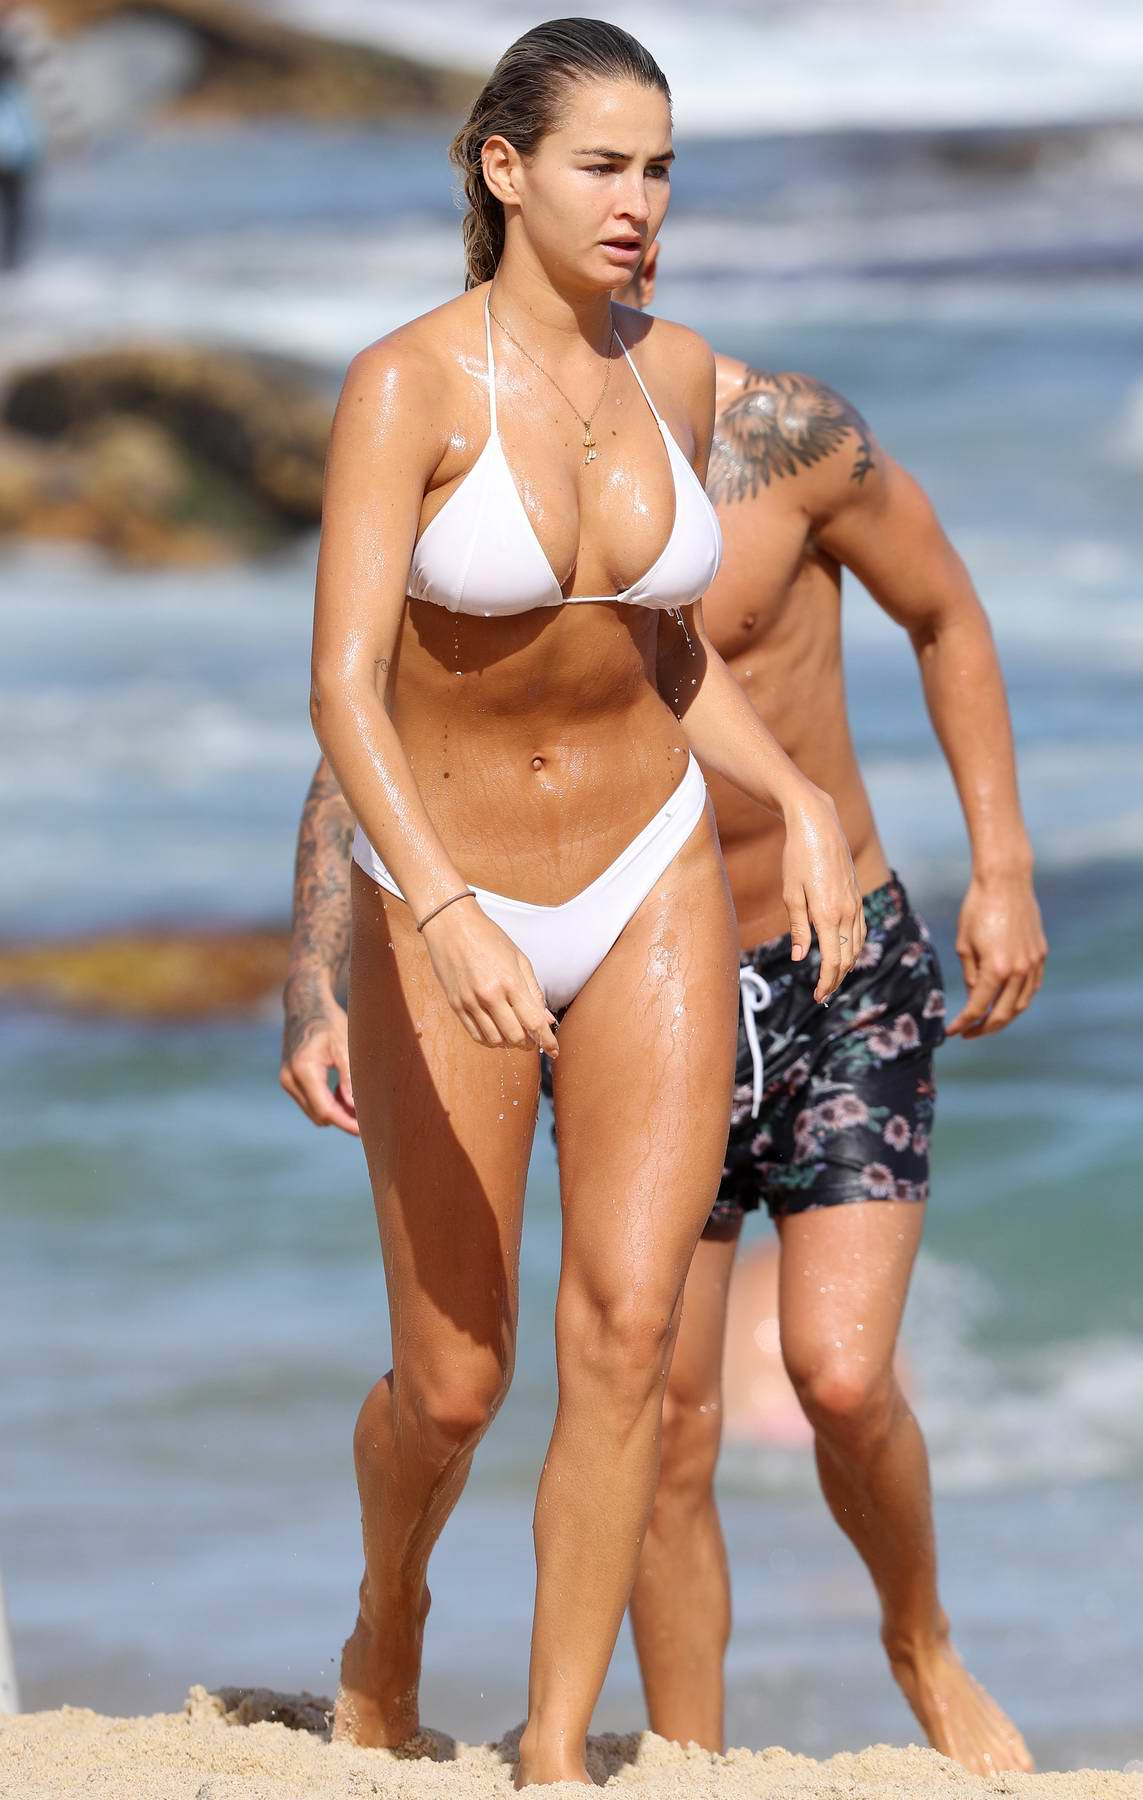 Madi Edwards wears a white bikini on a beach outing with her boyfriend in Sydney, Australia